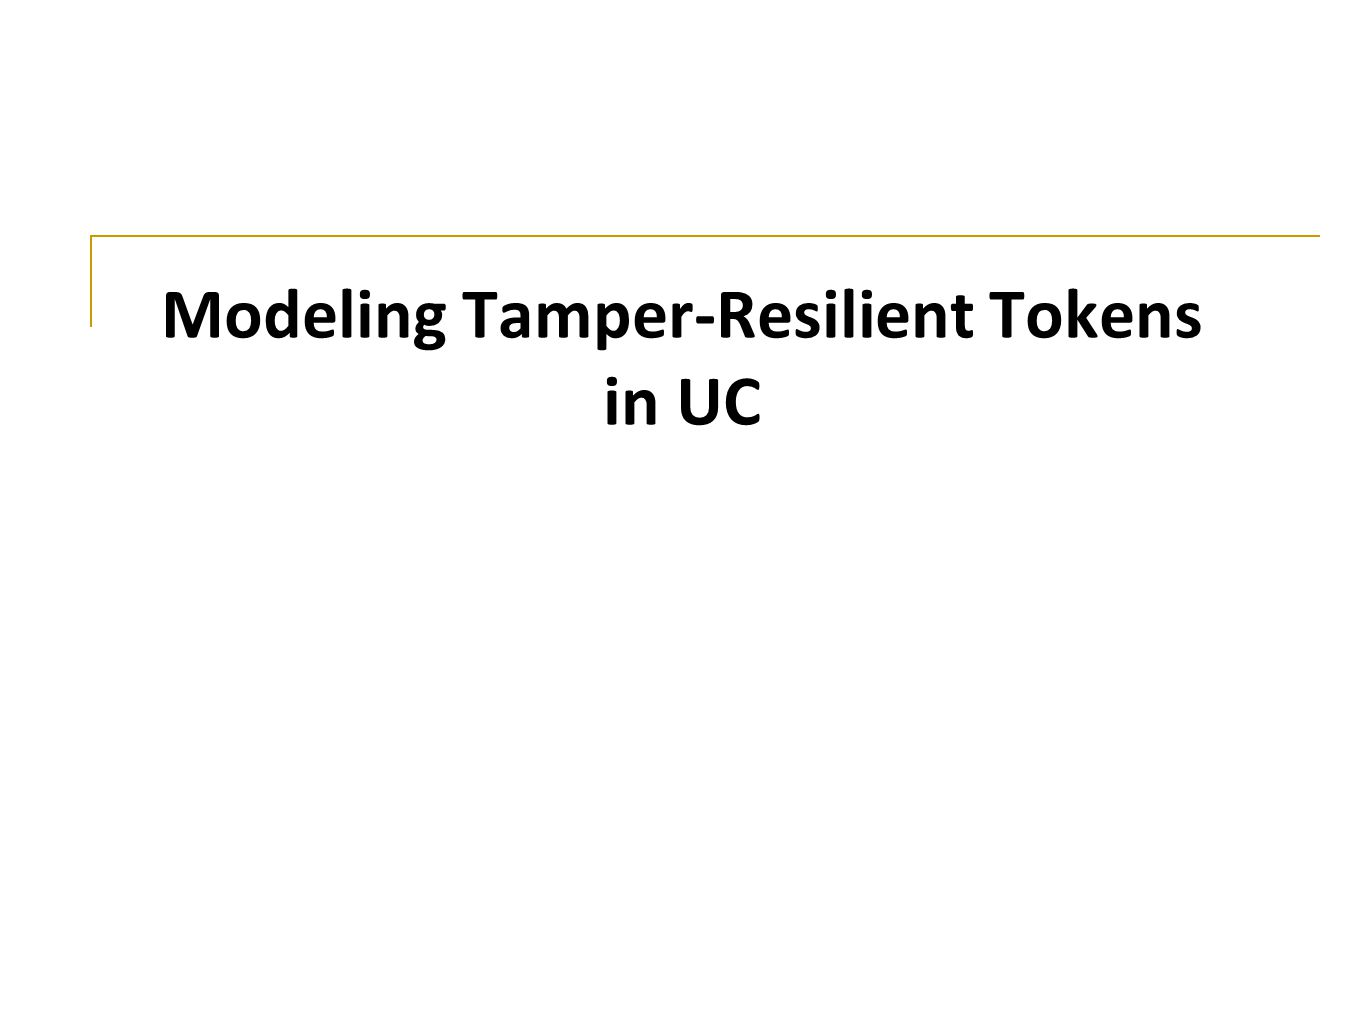 Modeling Tamper-Resilient Tokens in UC